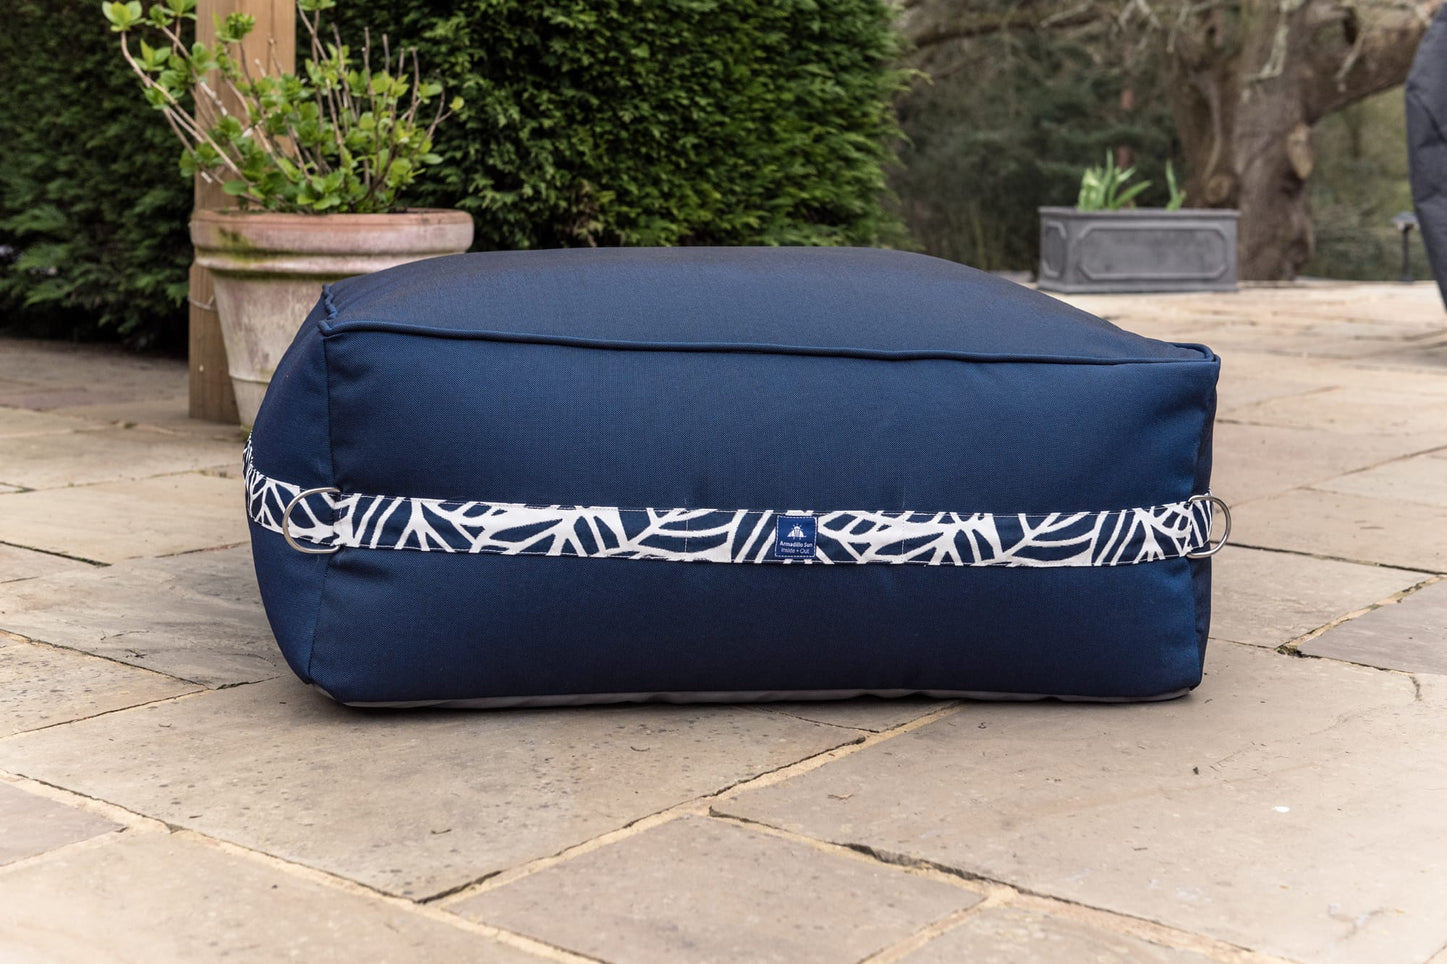 Monaco Modular Ben Bag Ottoman in Navy with Palm Patterned Straps Monaco armadillosun